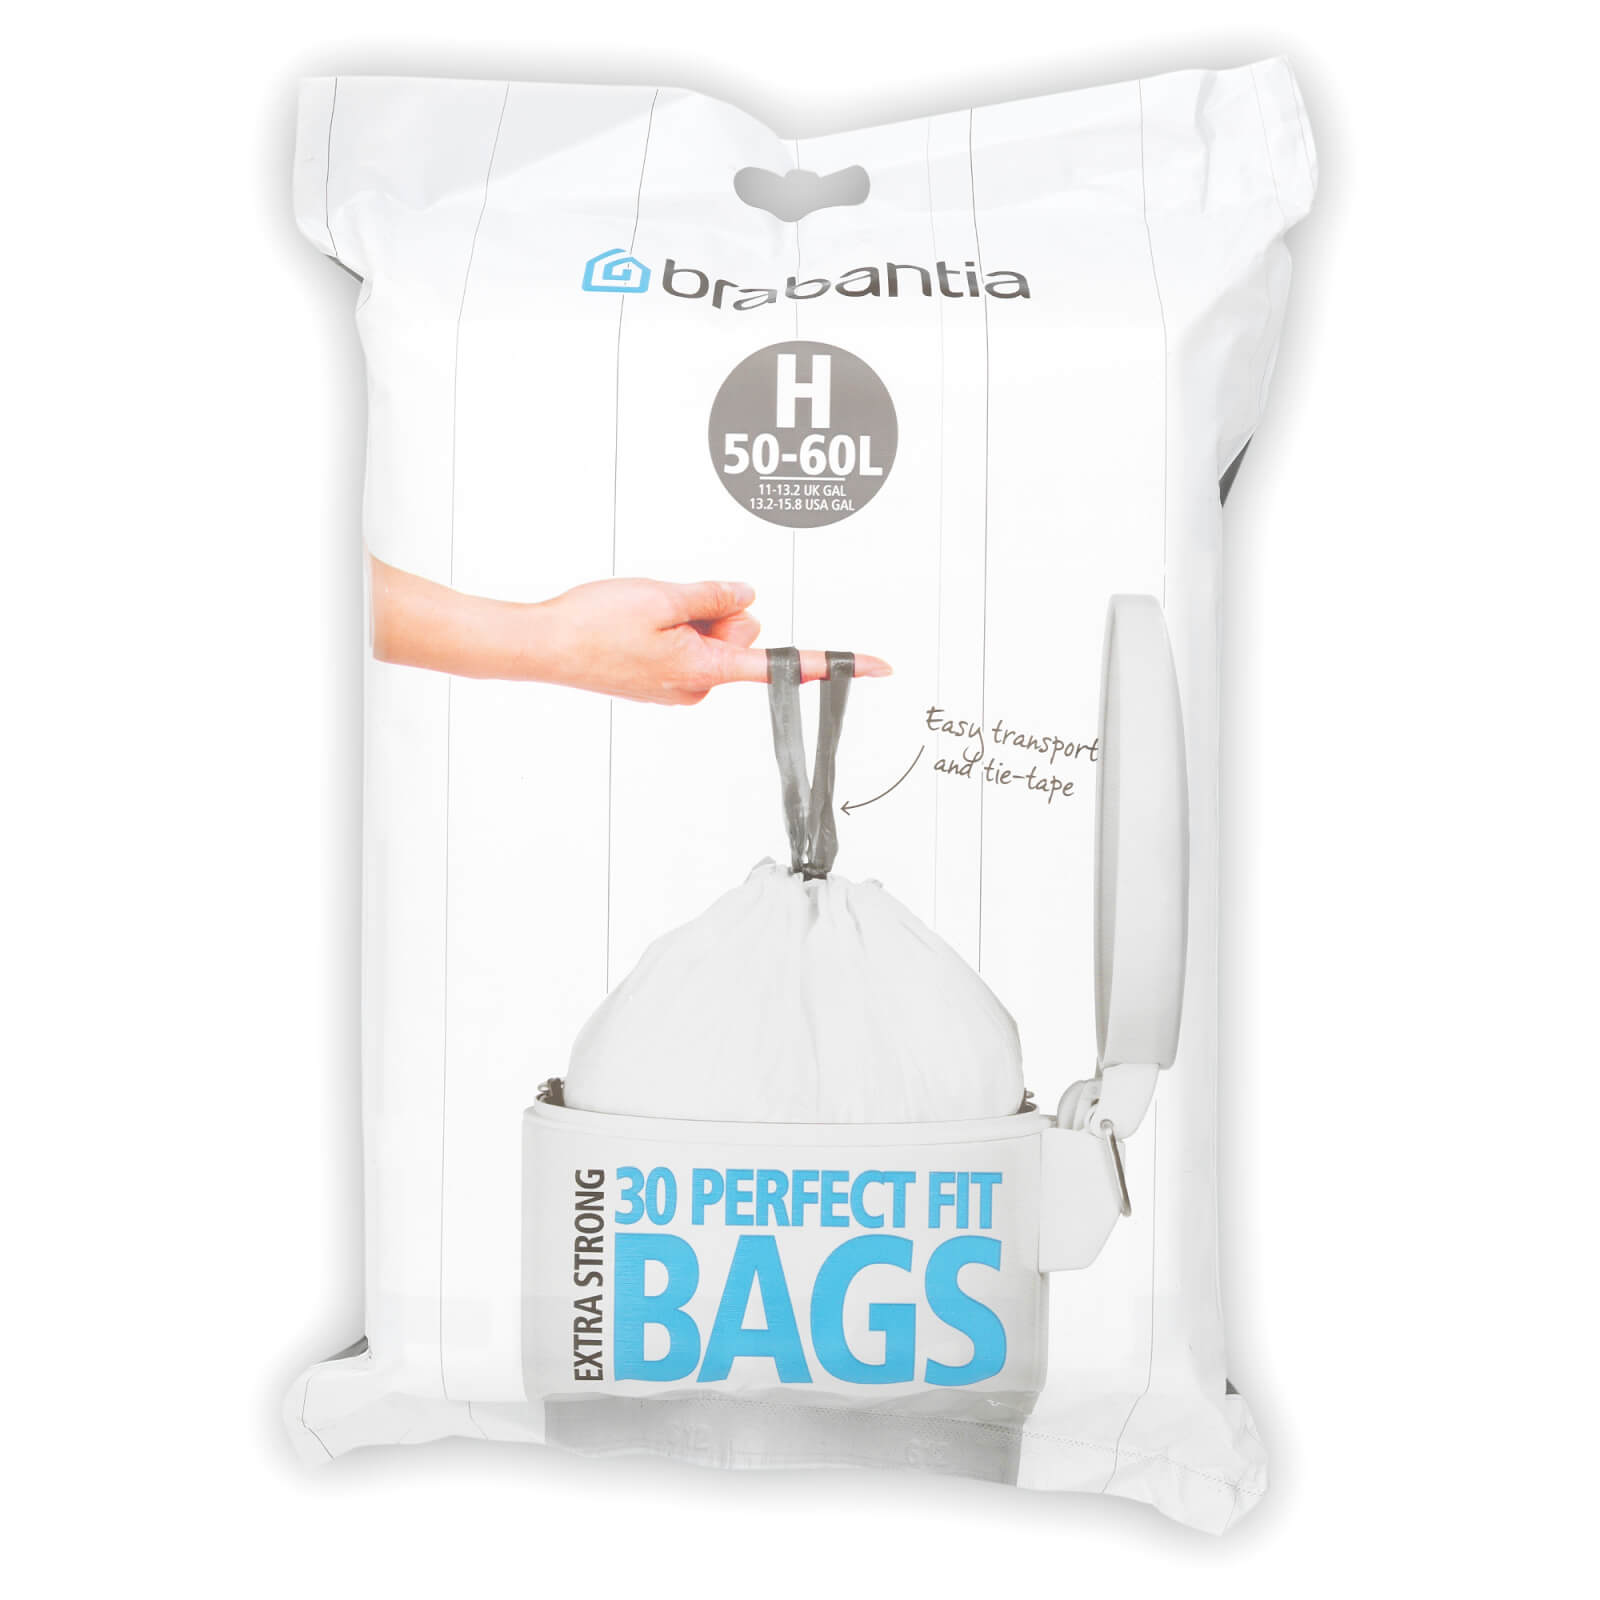 Brabantia PerfectFit Bags 40-50 Litre [H], Dispenser Pack of 30 Bags - White